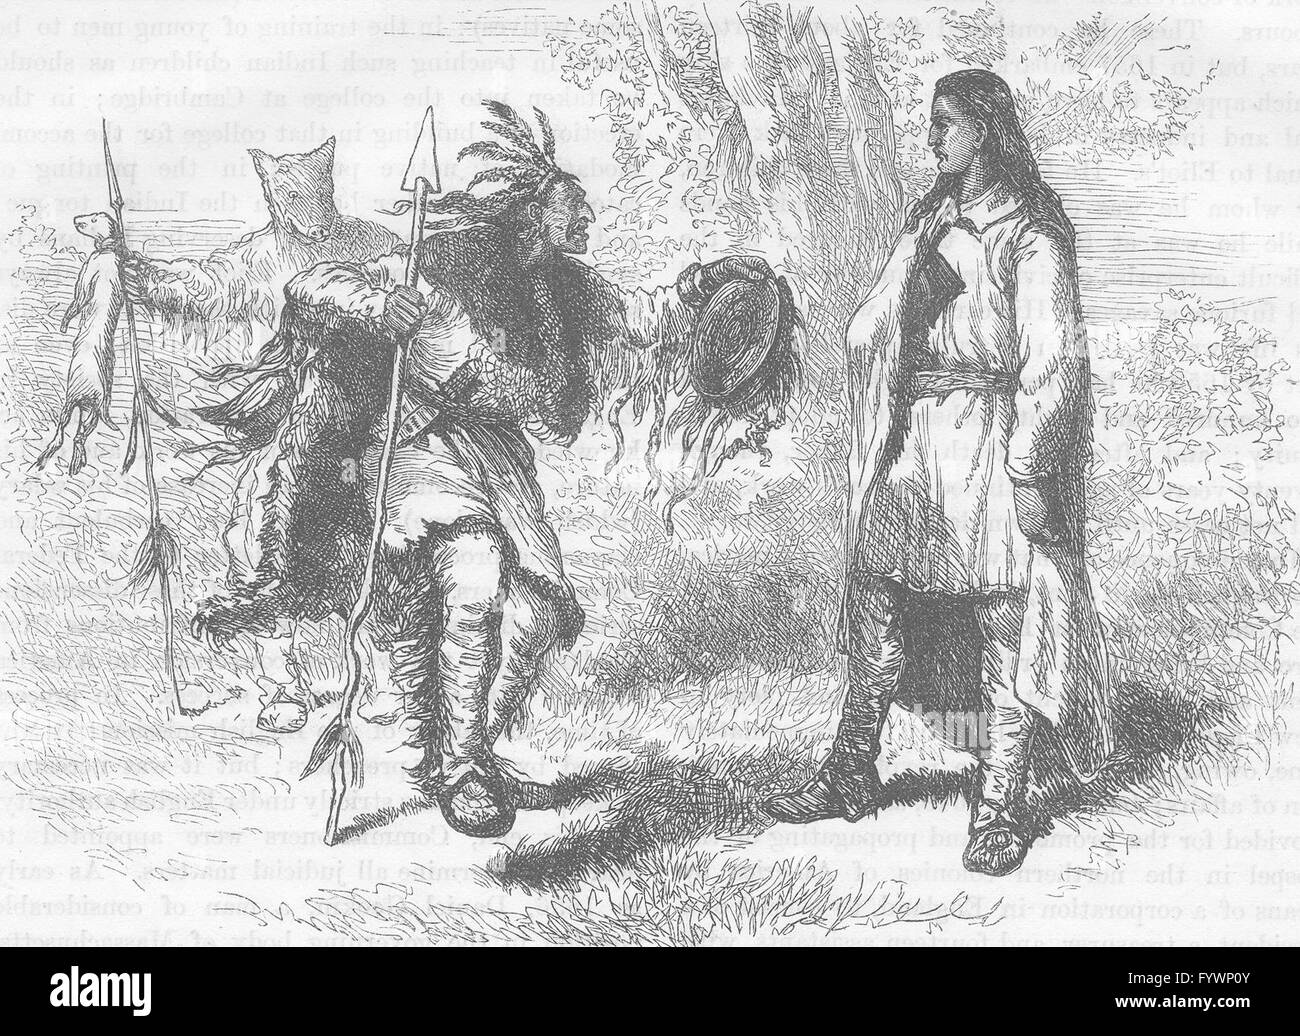 USA: Converted Indian and Powows, antique print c1880 - Stock Image